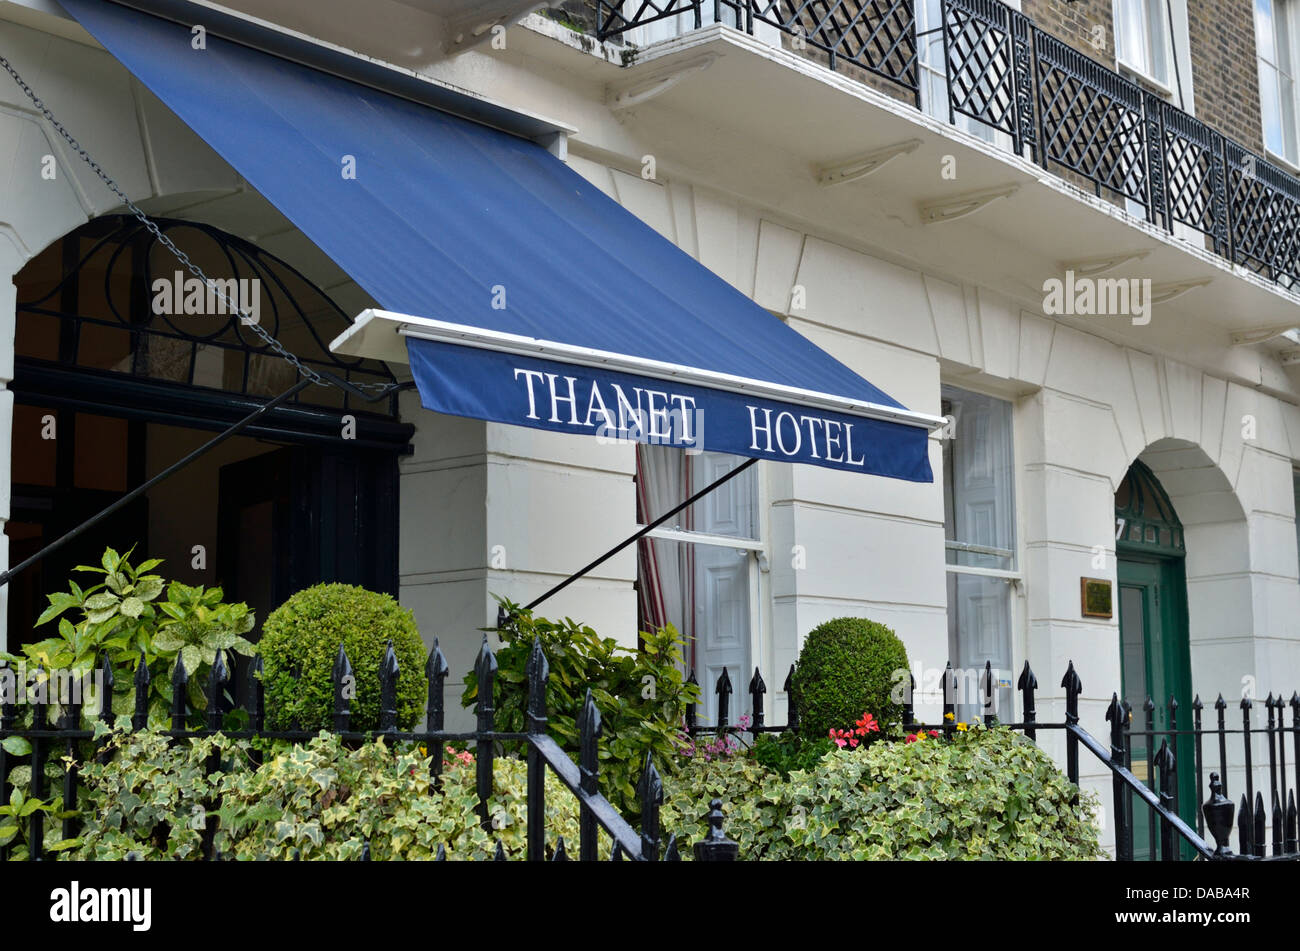 Thanet Hotel in Bedford Place, Bloomsbury WC1, London, UK - Stock Image